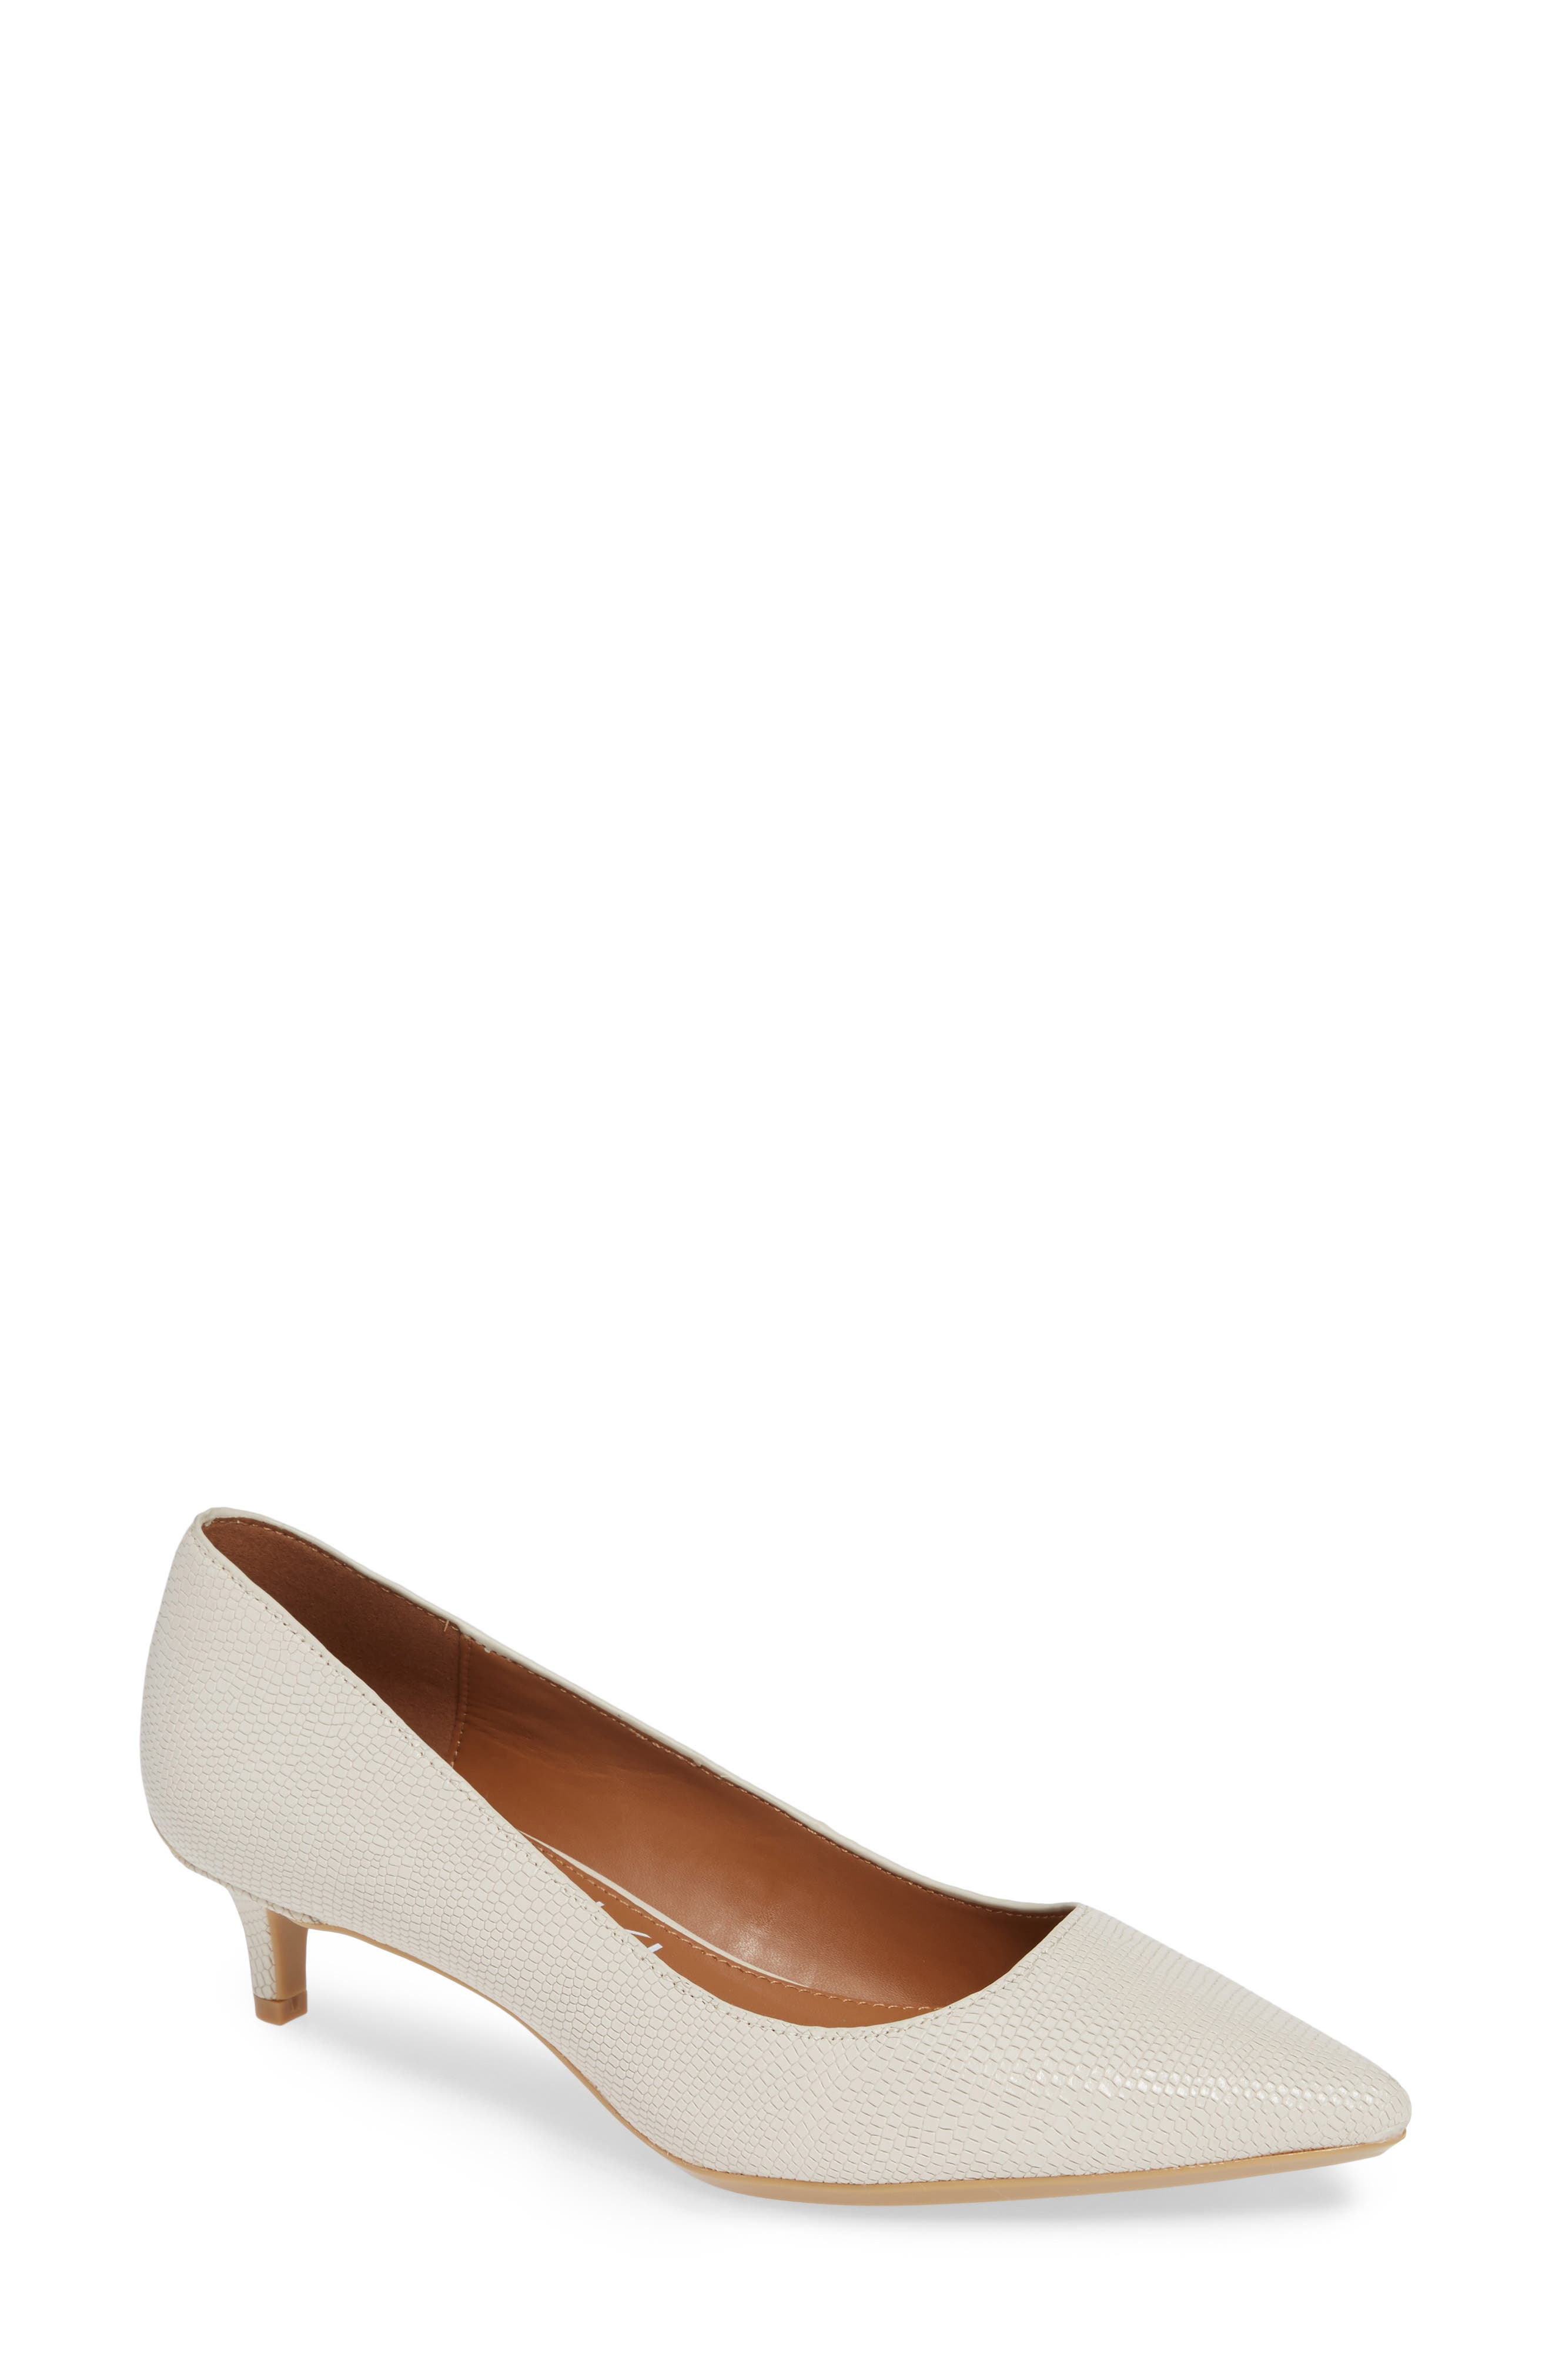 Gabrianna Pump,                         Main,                         color, SOFT WHITE LEATHER